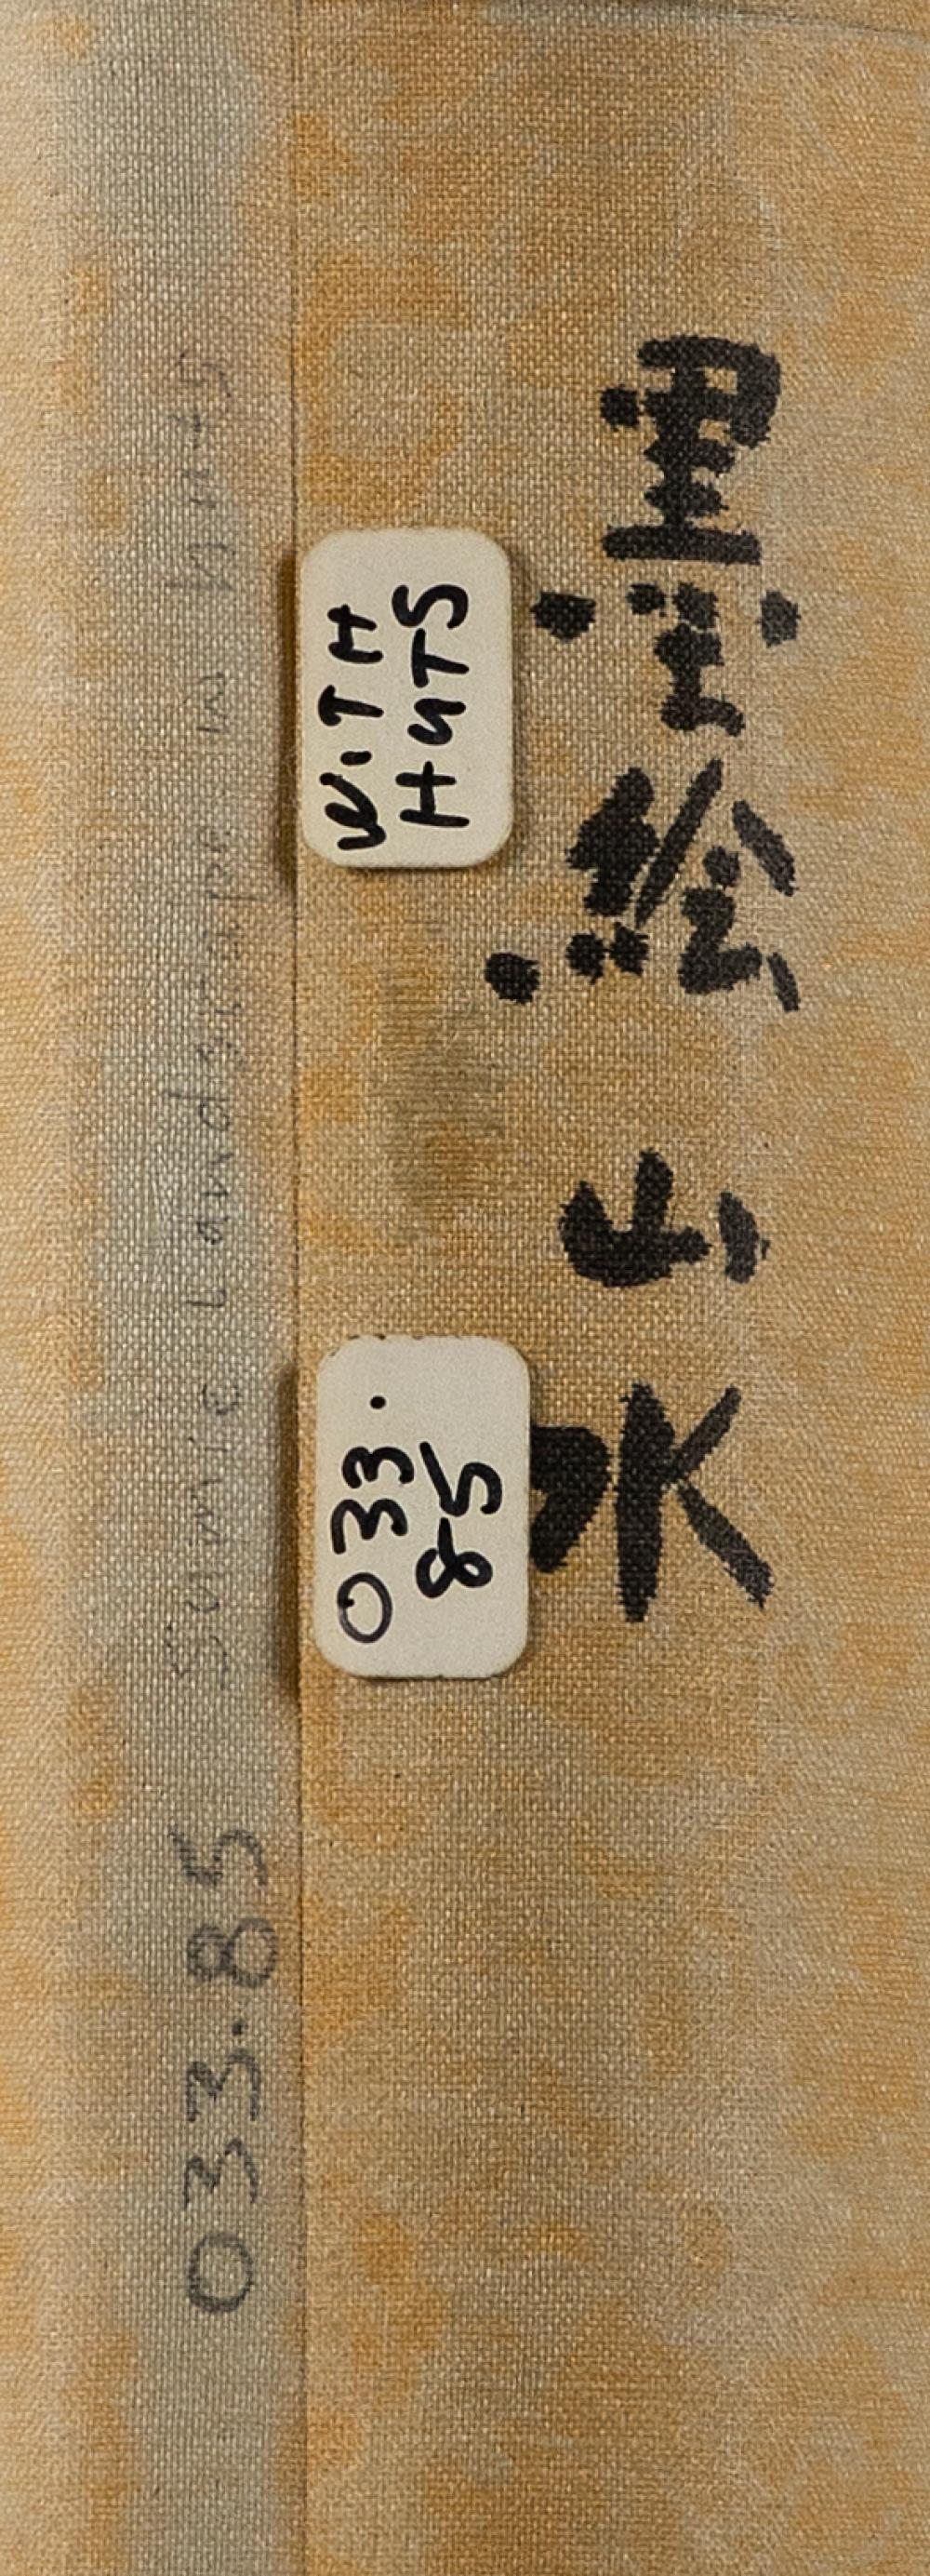 JAPANESE SESSHU-STYLE SCROLL PAINTING ON PAPER Depicts birds in flight above a village. 34.5